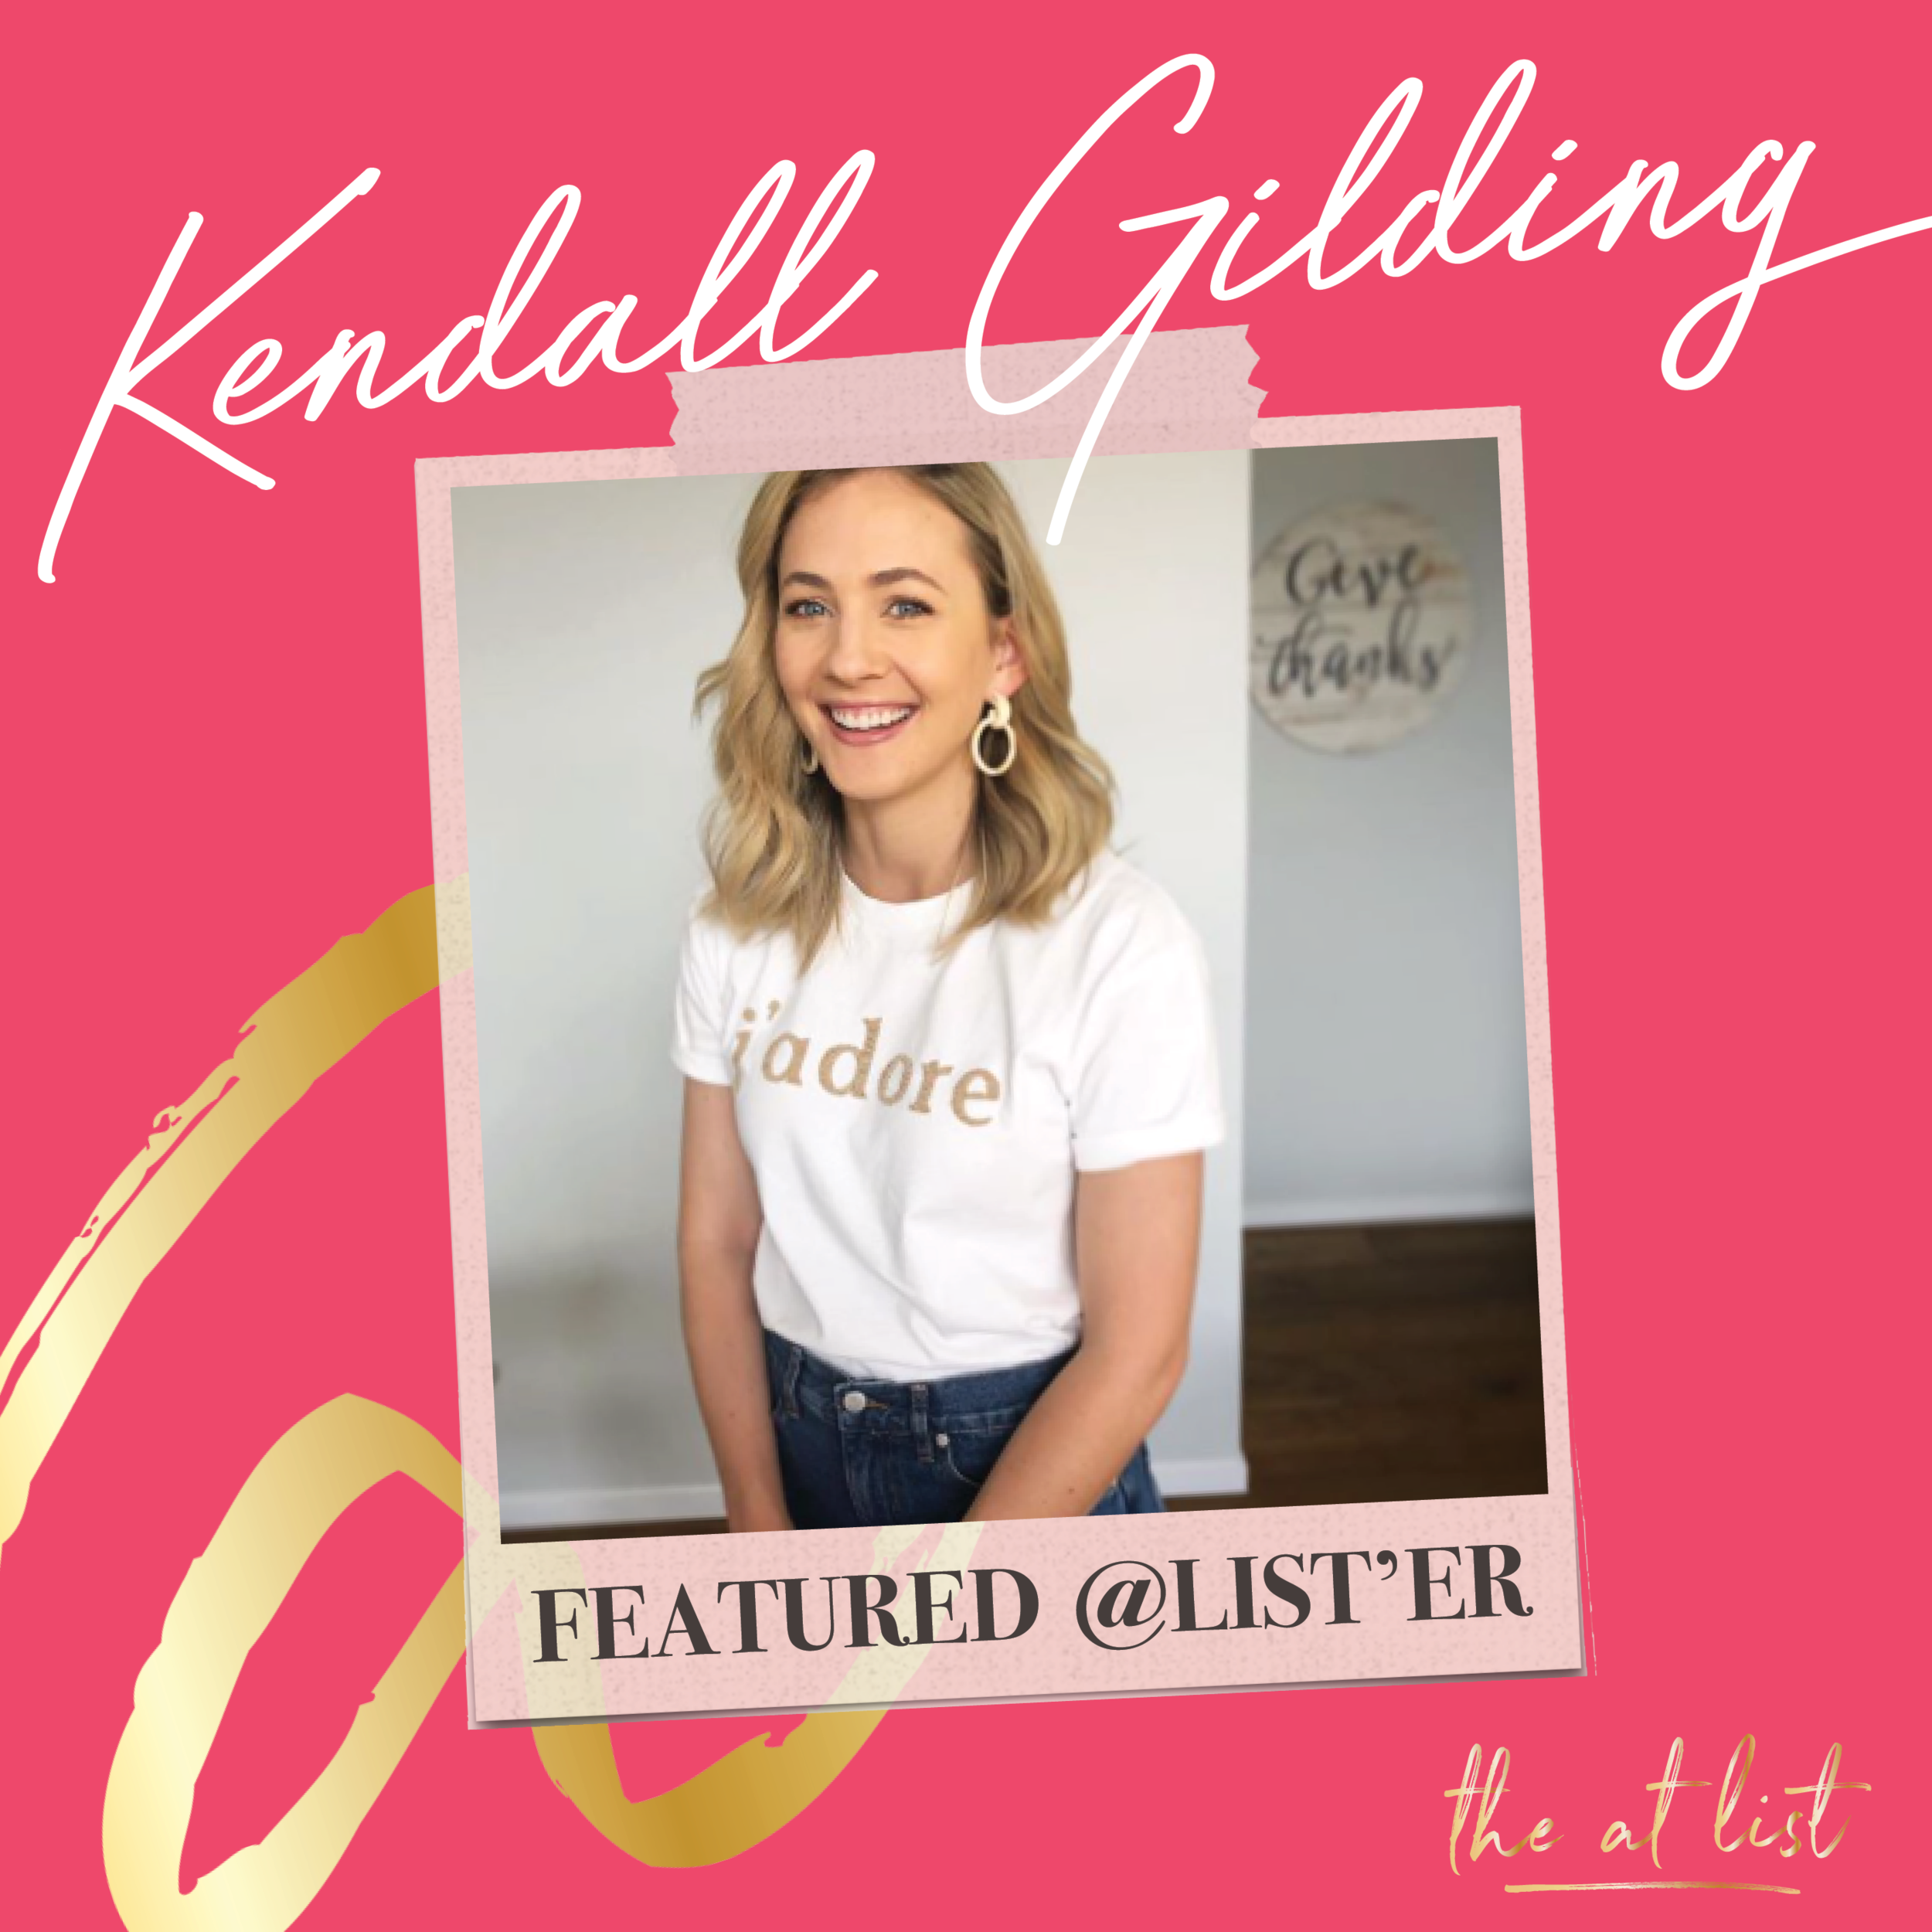 Kendall Gilding Graphic_Image.png